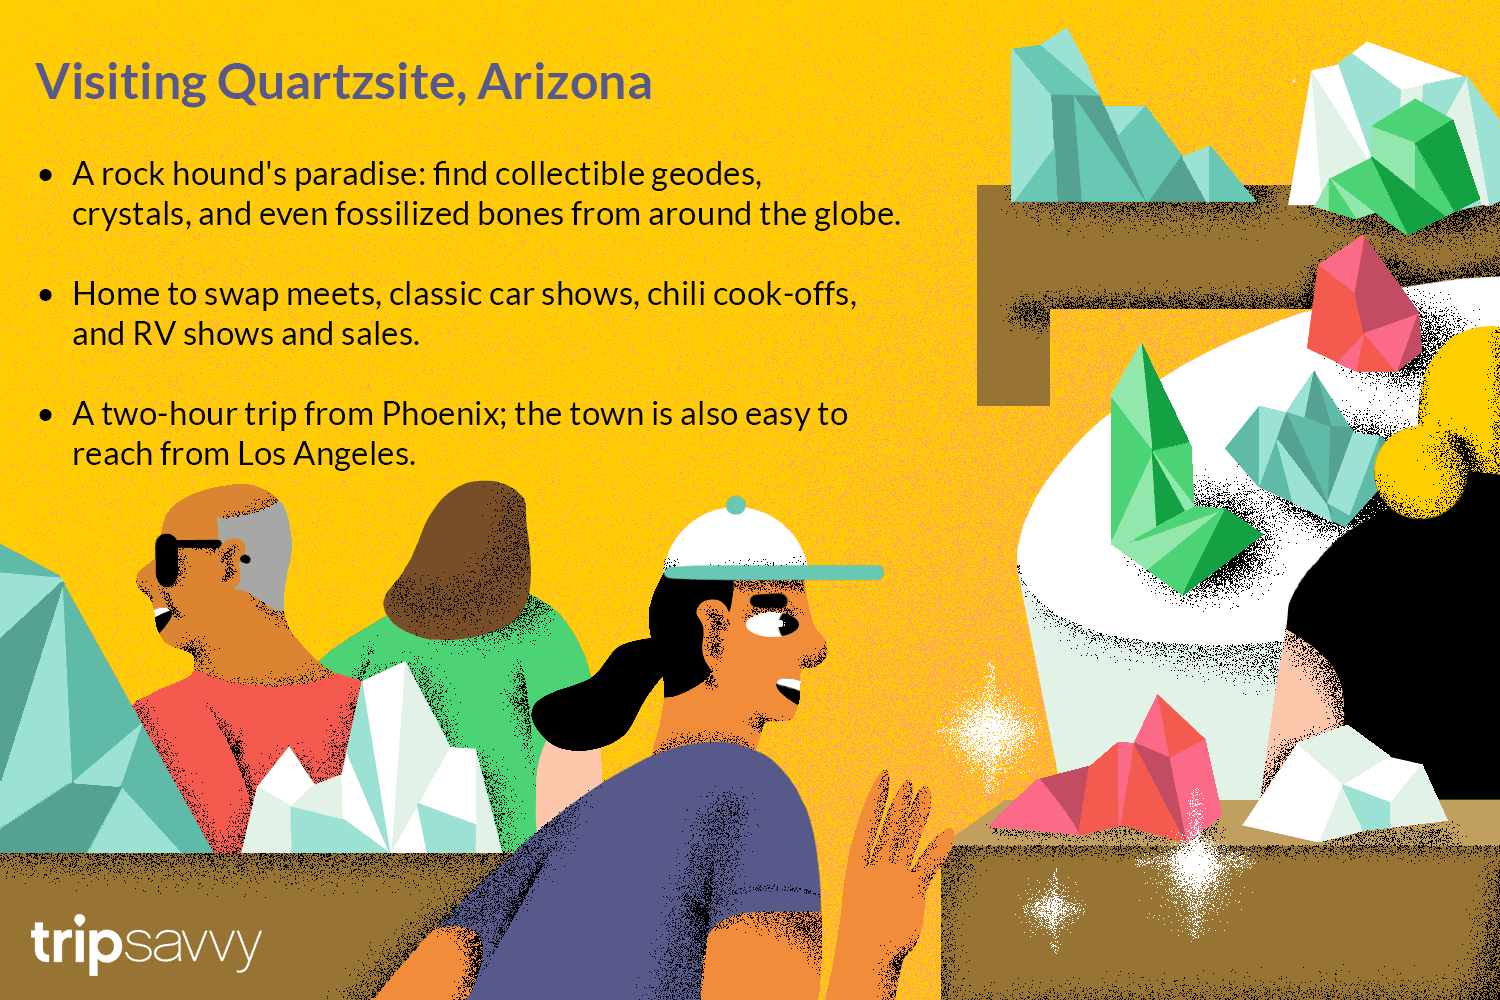 an illustration with tips and drawings of people shopping in Quartzsite, Arizona